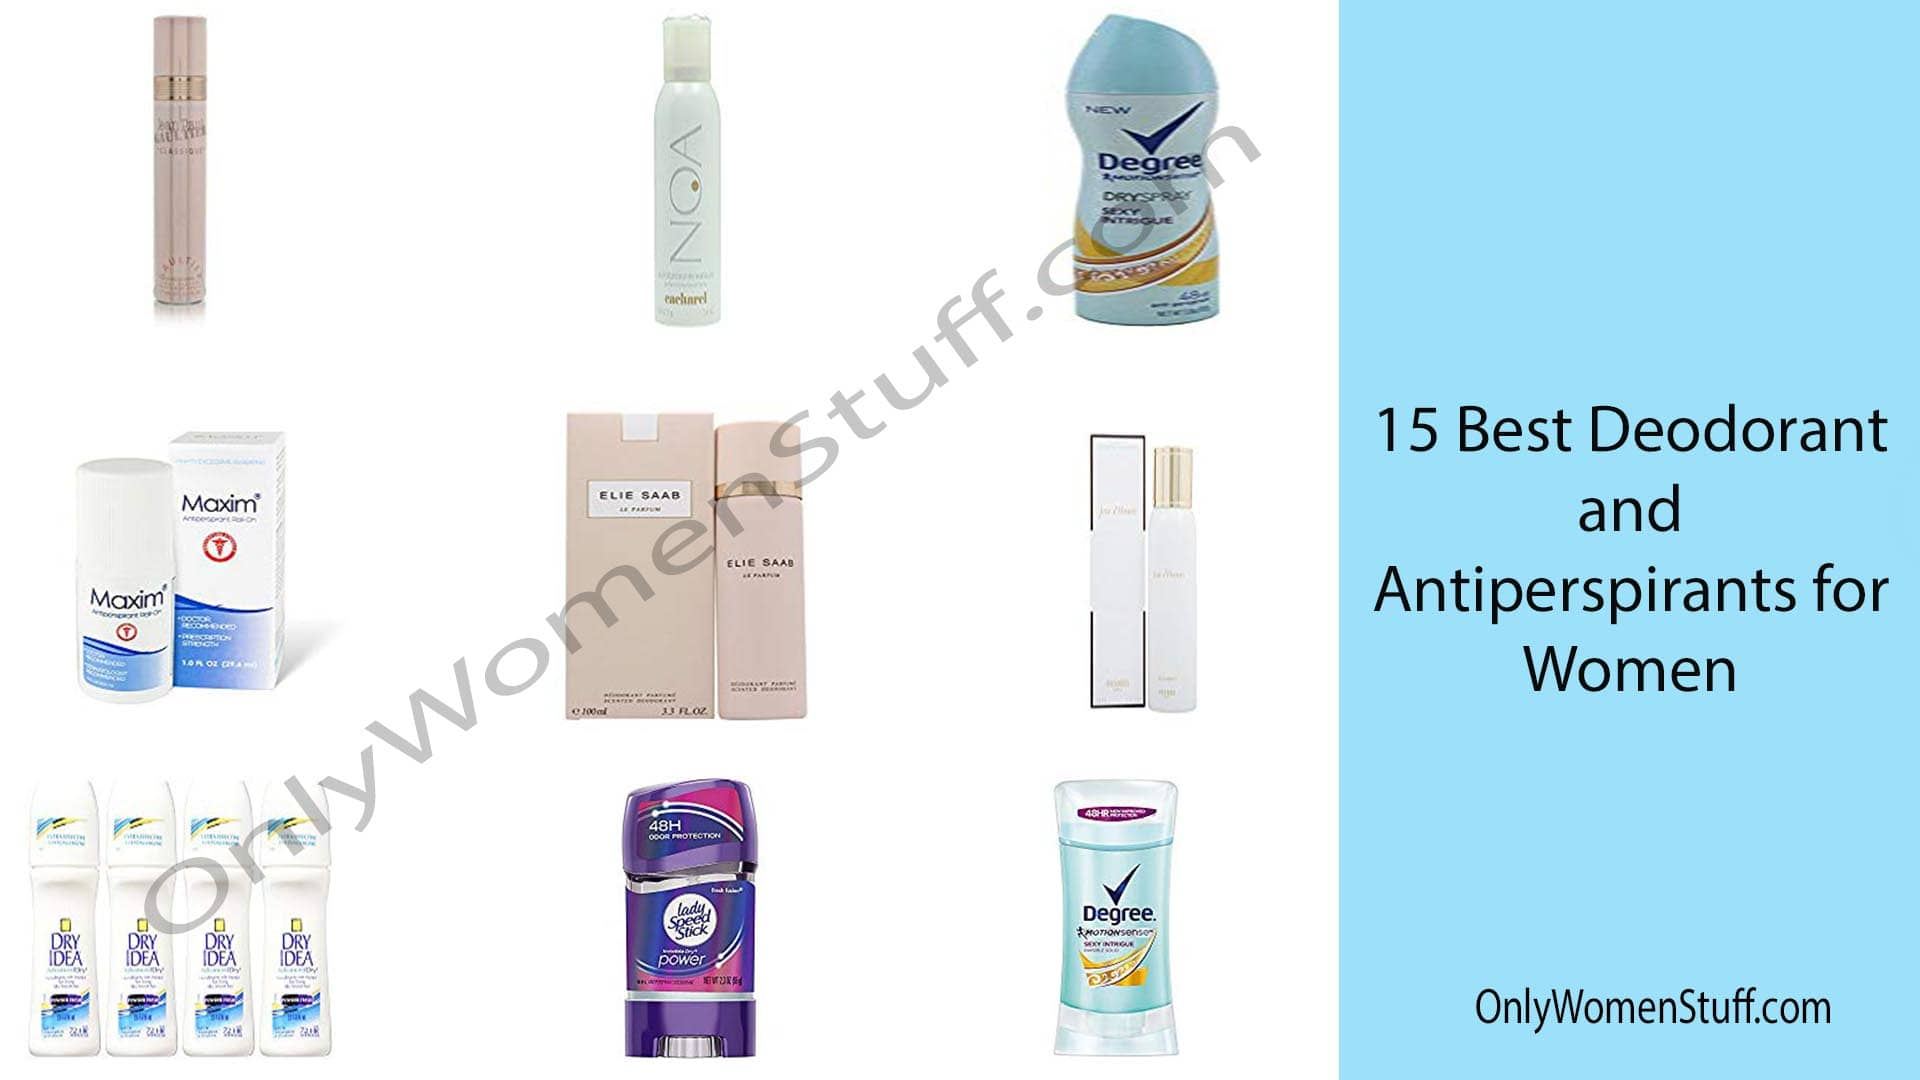 15 Best Deodorant And Antiperspirants For Women With Reviews